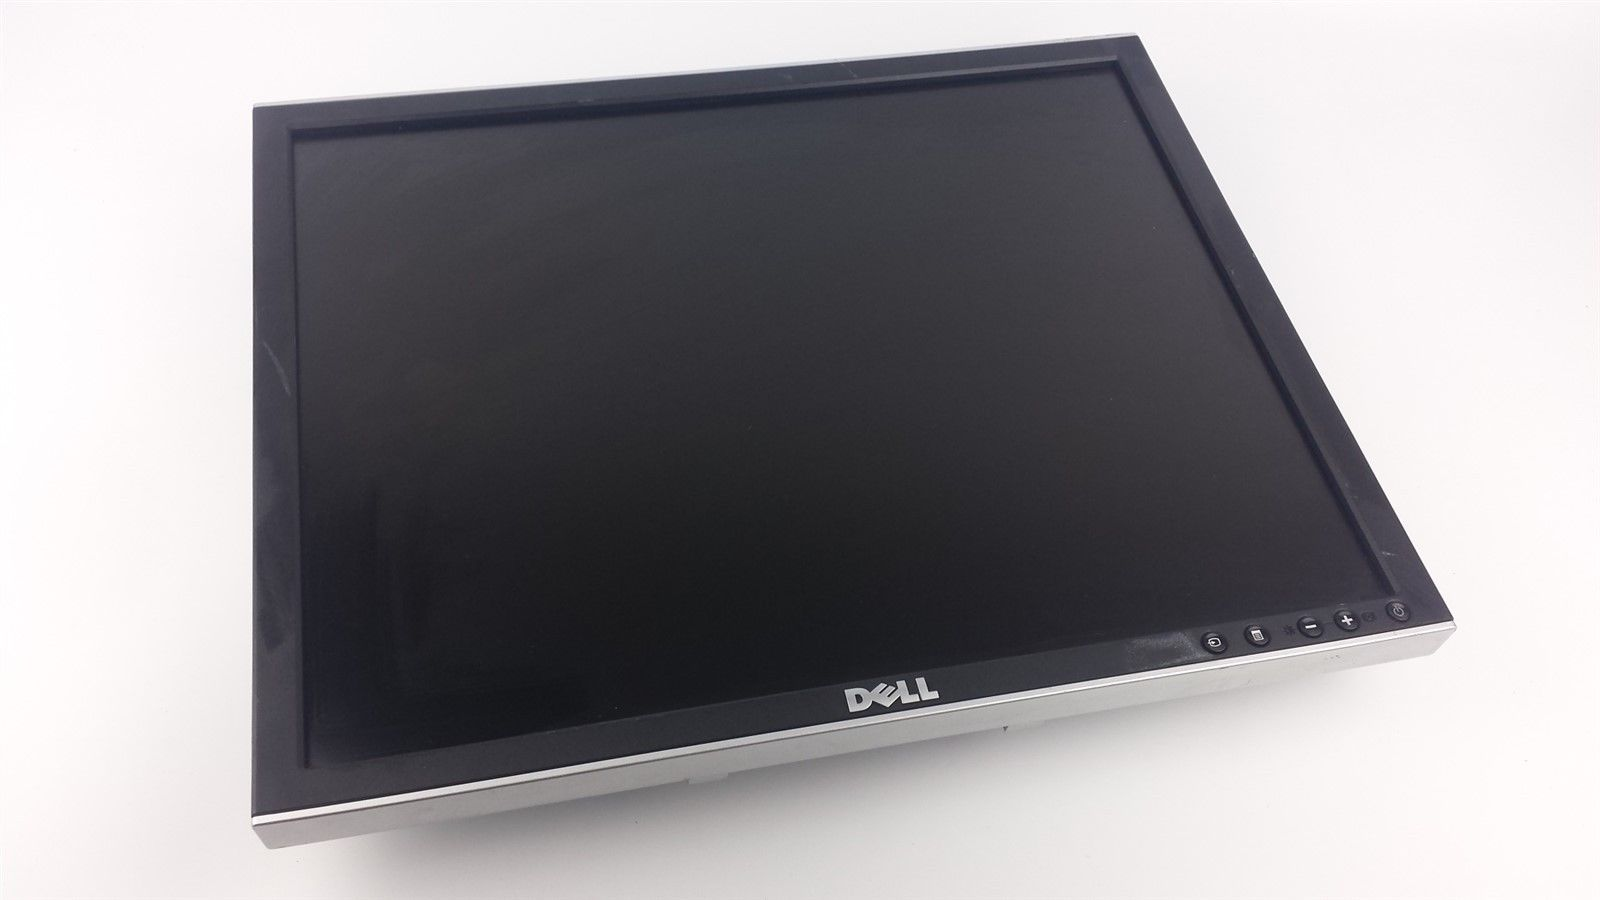 "Dell UltraSharp 1908FPb LCD Display Monitor 19"" DY526 with Power & VGA Cord"